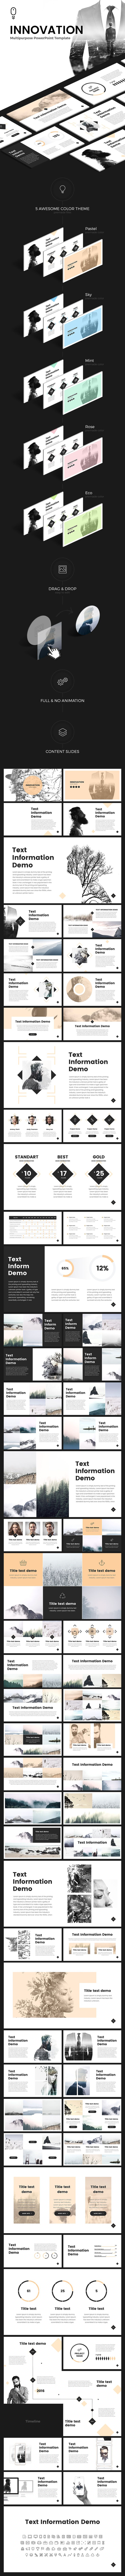 "Download: http://site2max.pro/innovation-powerpoint-template/ ""Innovation"" PowerPoint template #innovation #marketing #powerpoint #presentation #pptx #animation #startup #report #business #modern #minimal"